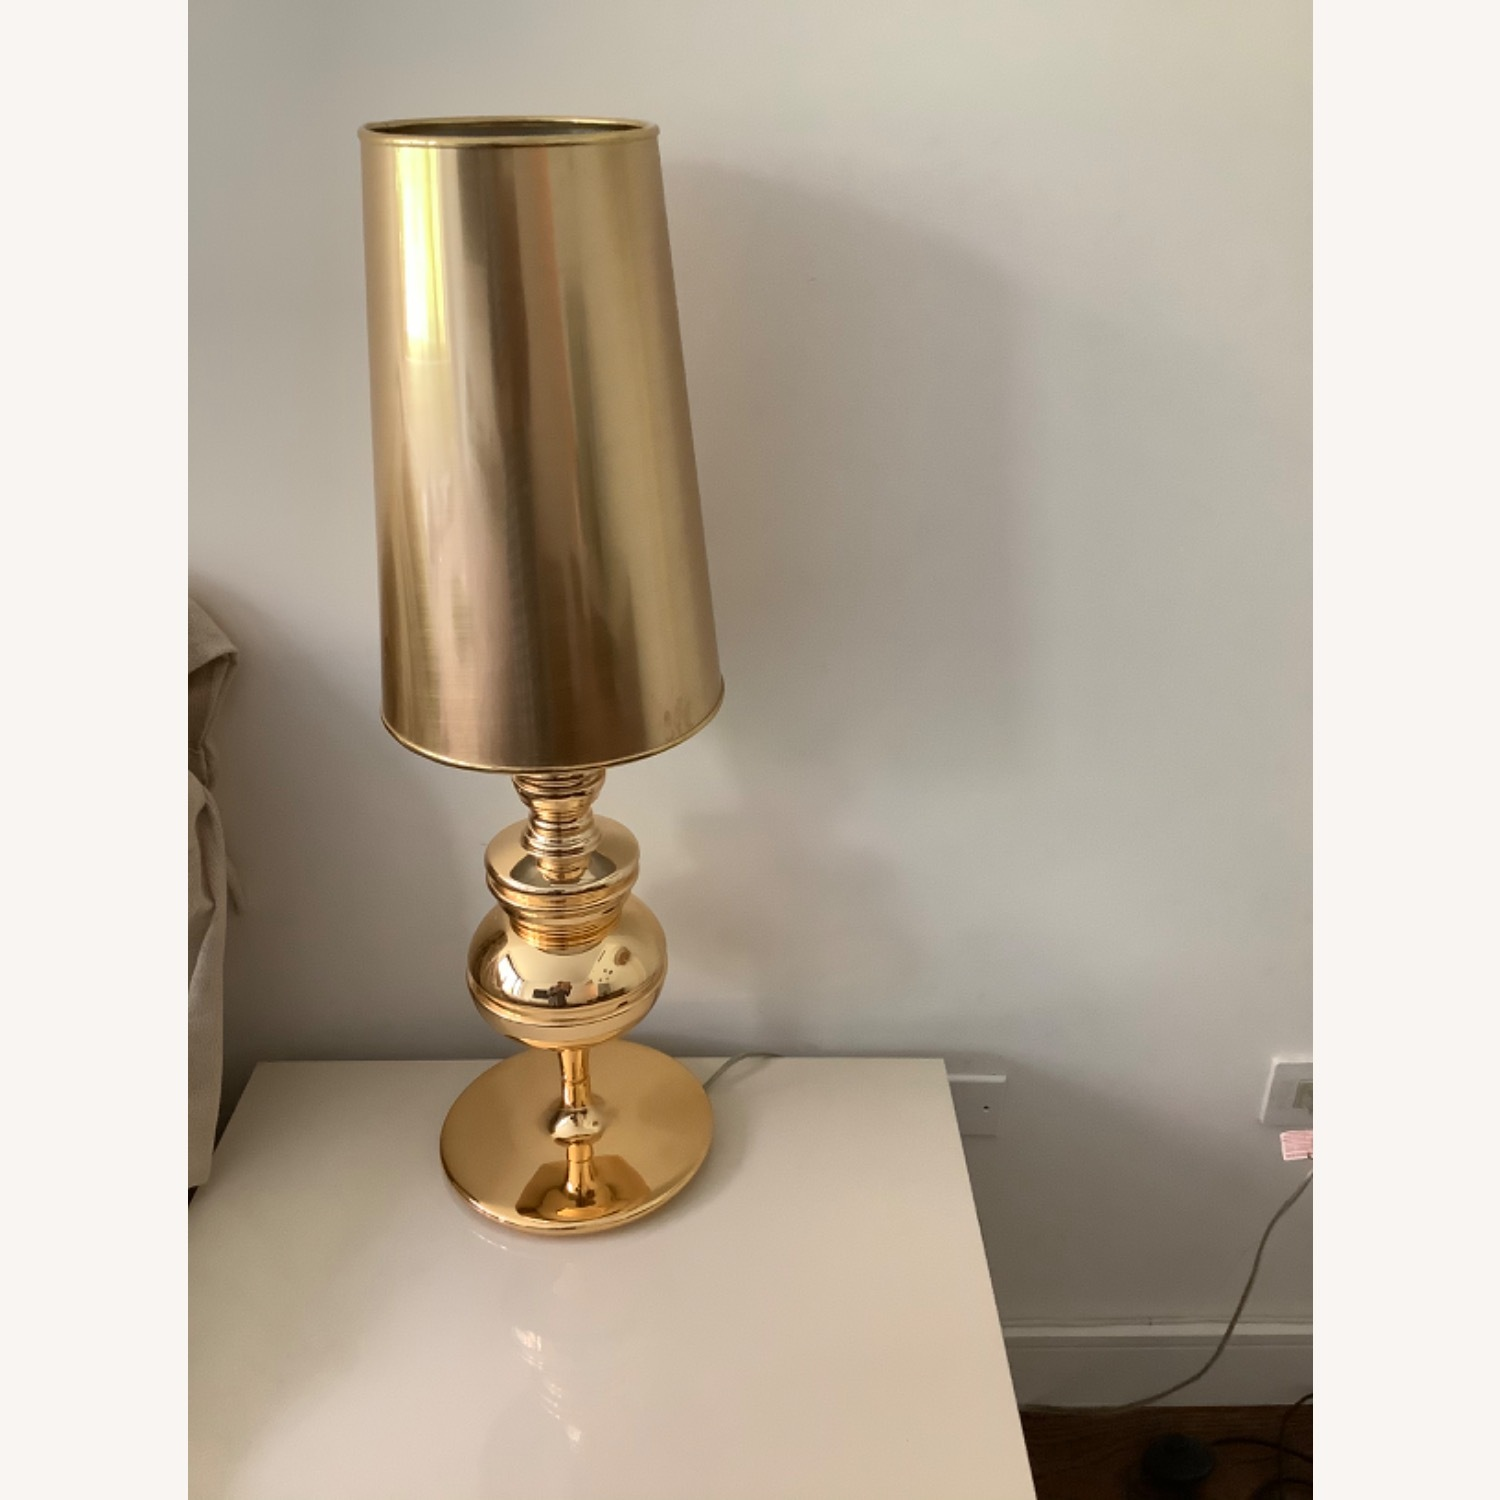 ABC Carpet and Home Gold Table Lamps - image-1